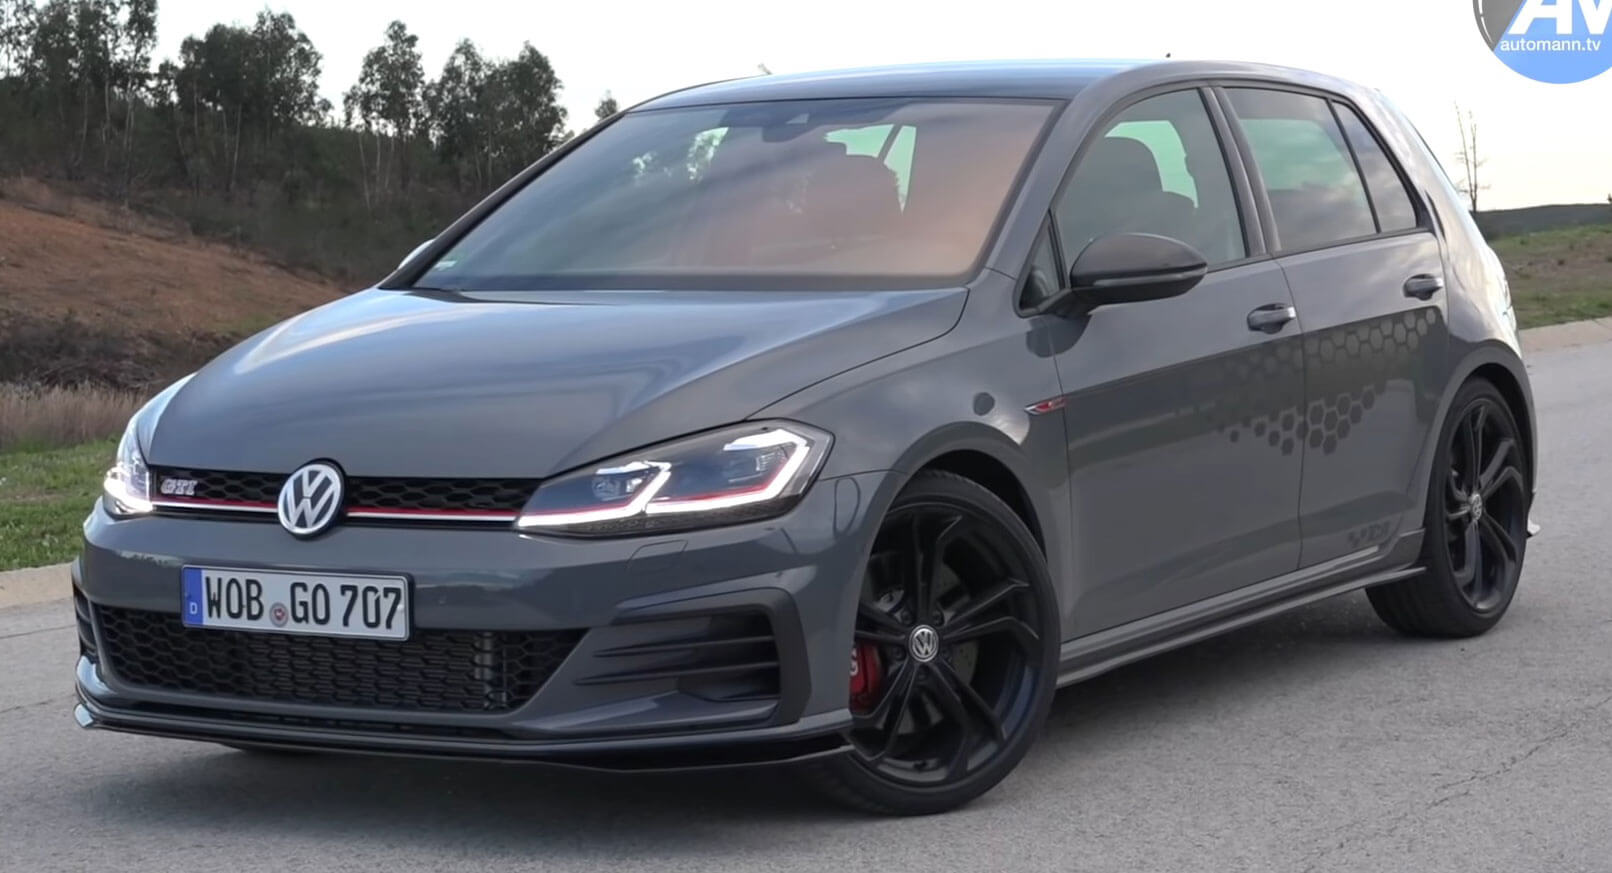 Golf Gti Tcr Is Volkswagen S Hot Hatch At Its Very Best